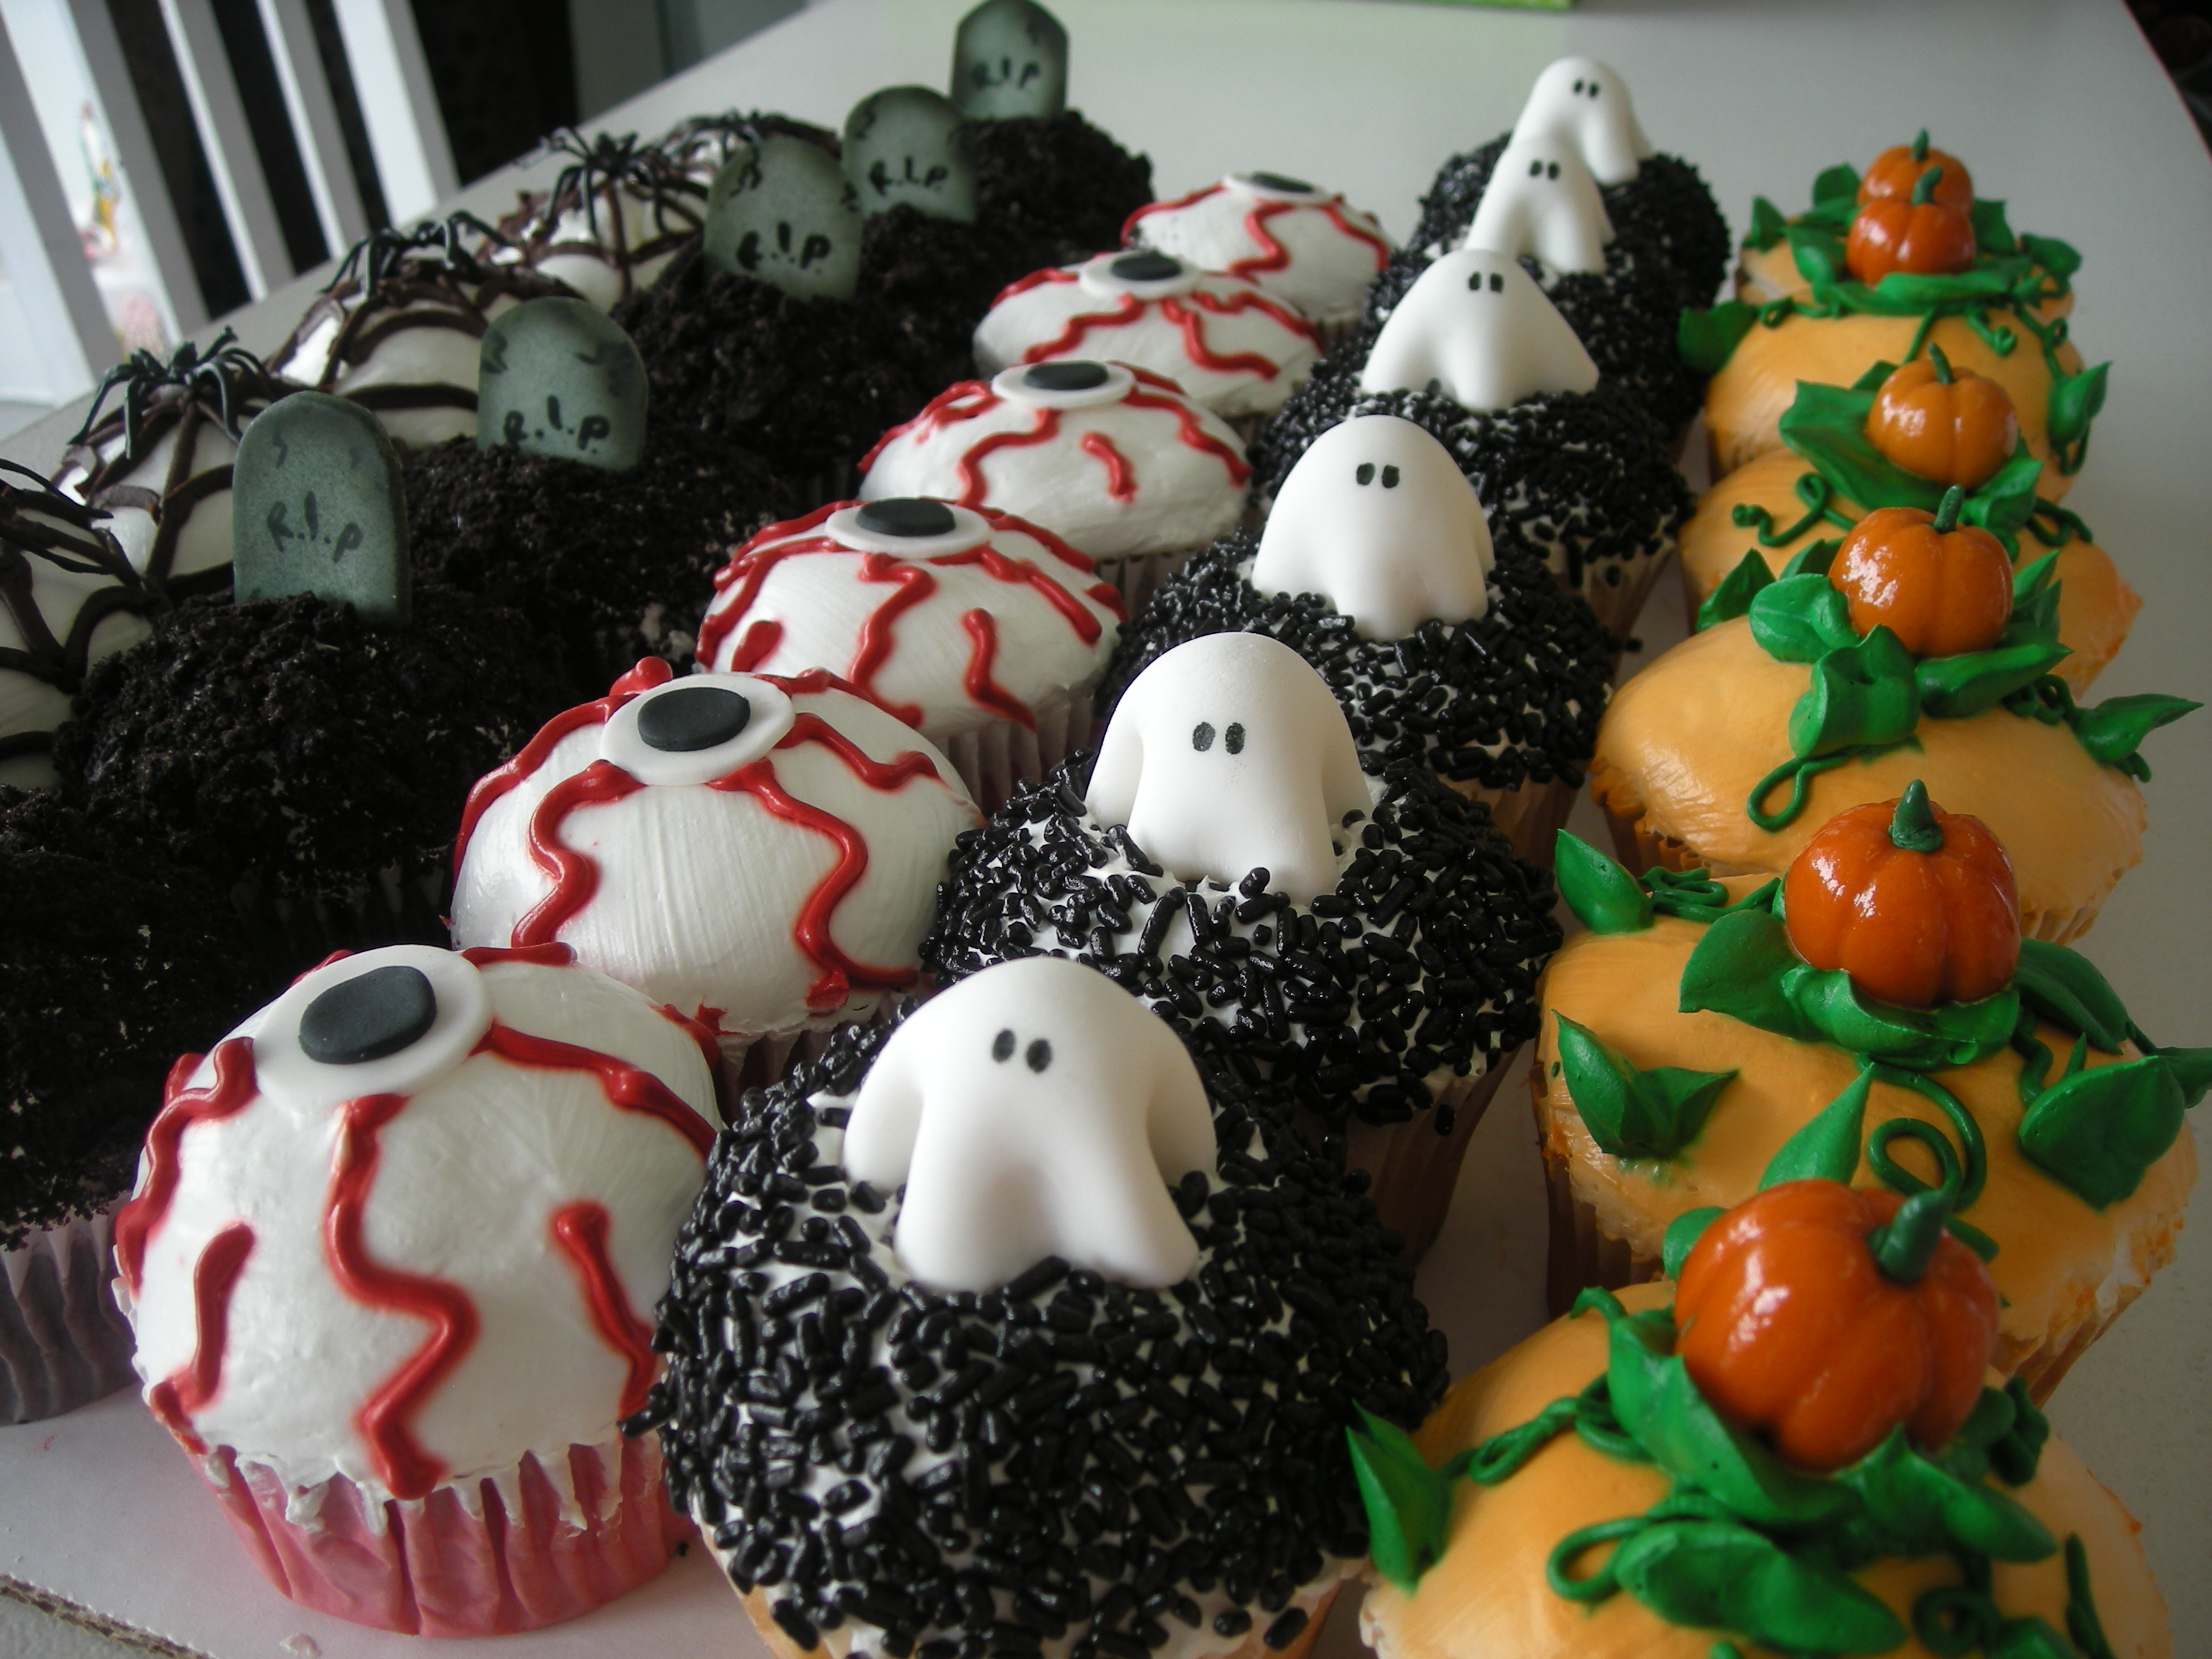 Halloween linda around the world - Halloween decorations for cupcakes ...